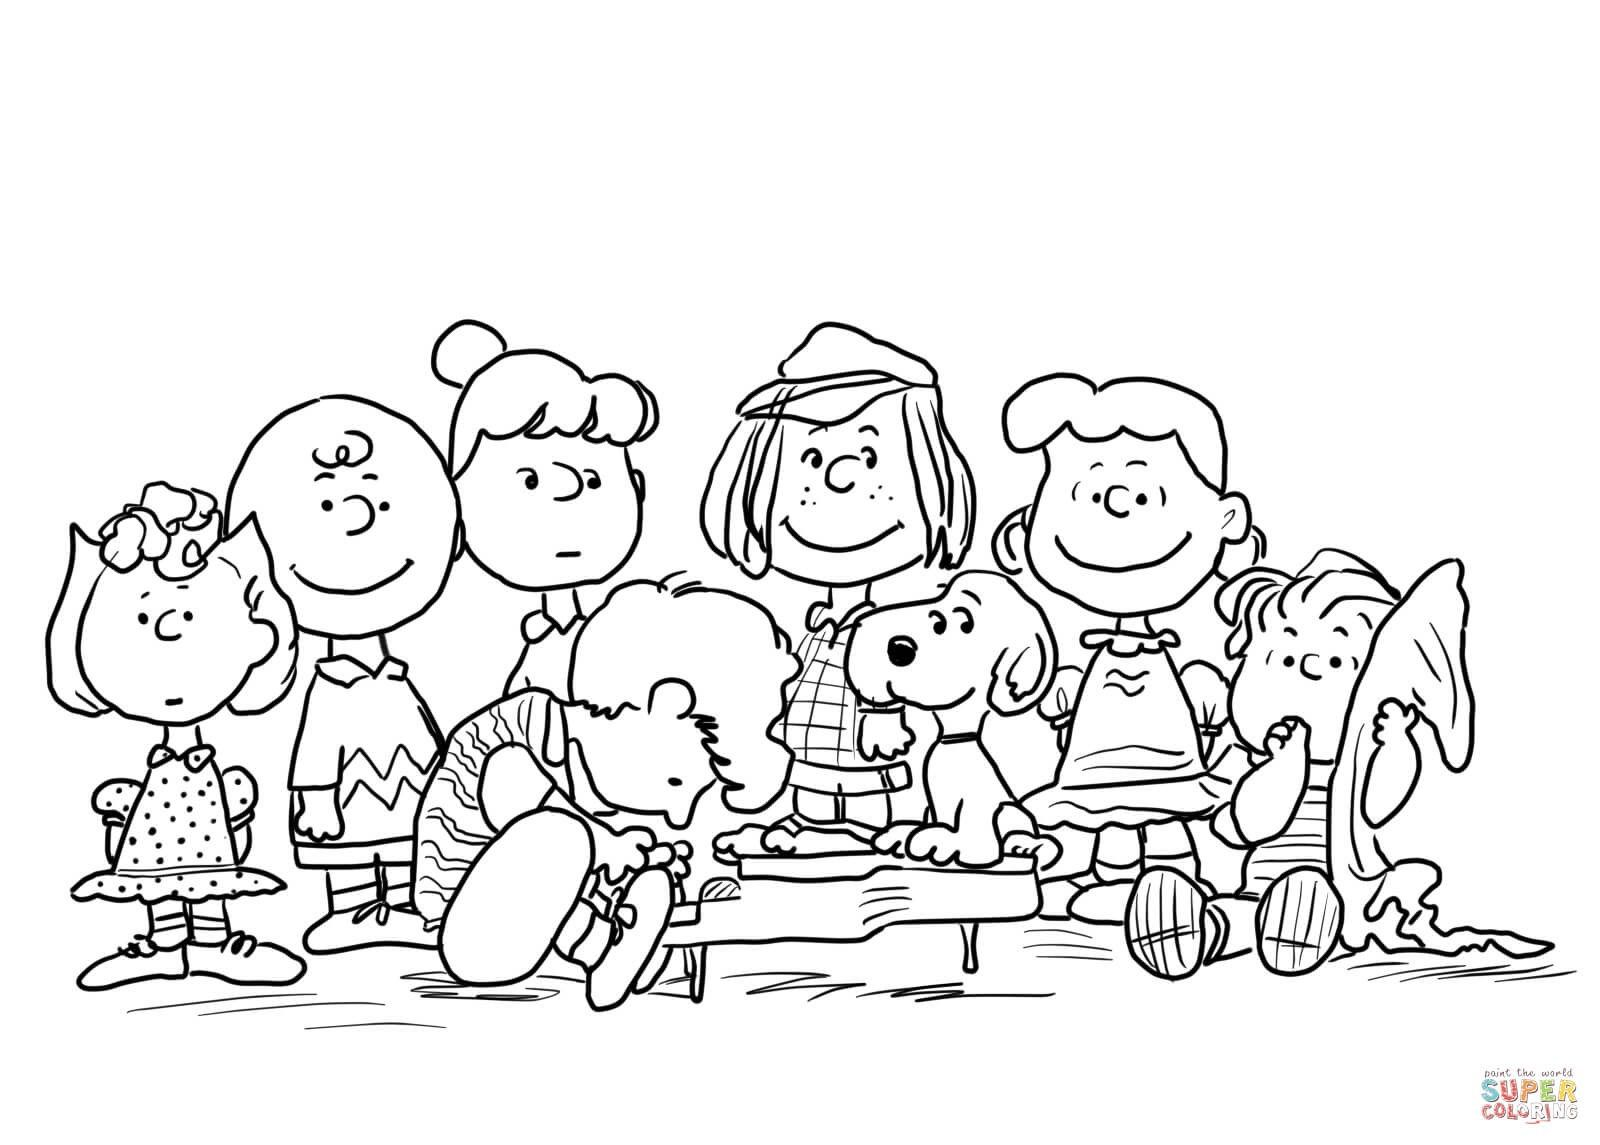 25 Marvelous Photo Of Peanuts Coloring Pages Davemelillo Com Thanksgiving Coloring Pages Snoopy Coloring Pages Halloween Coloring Pages